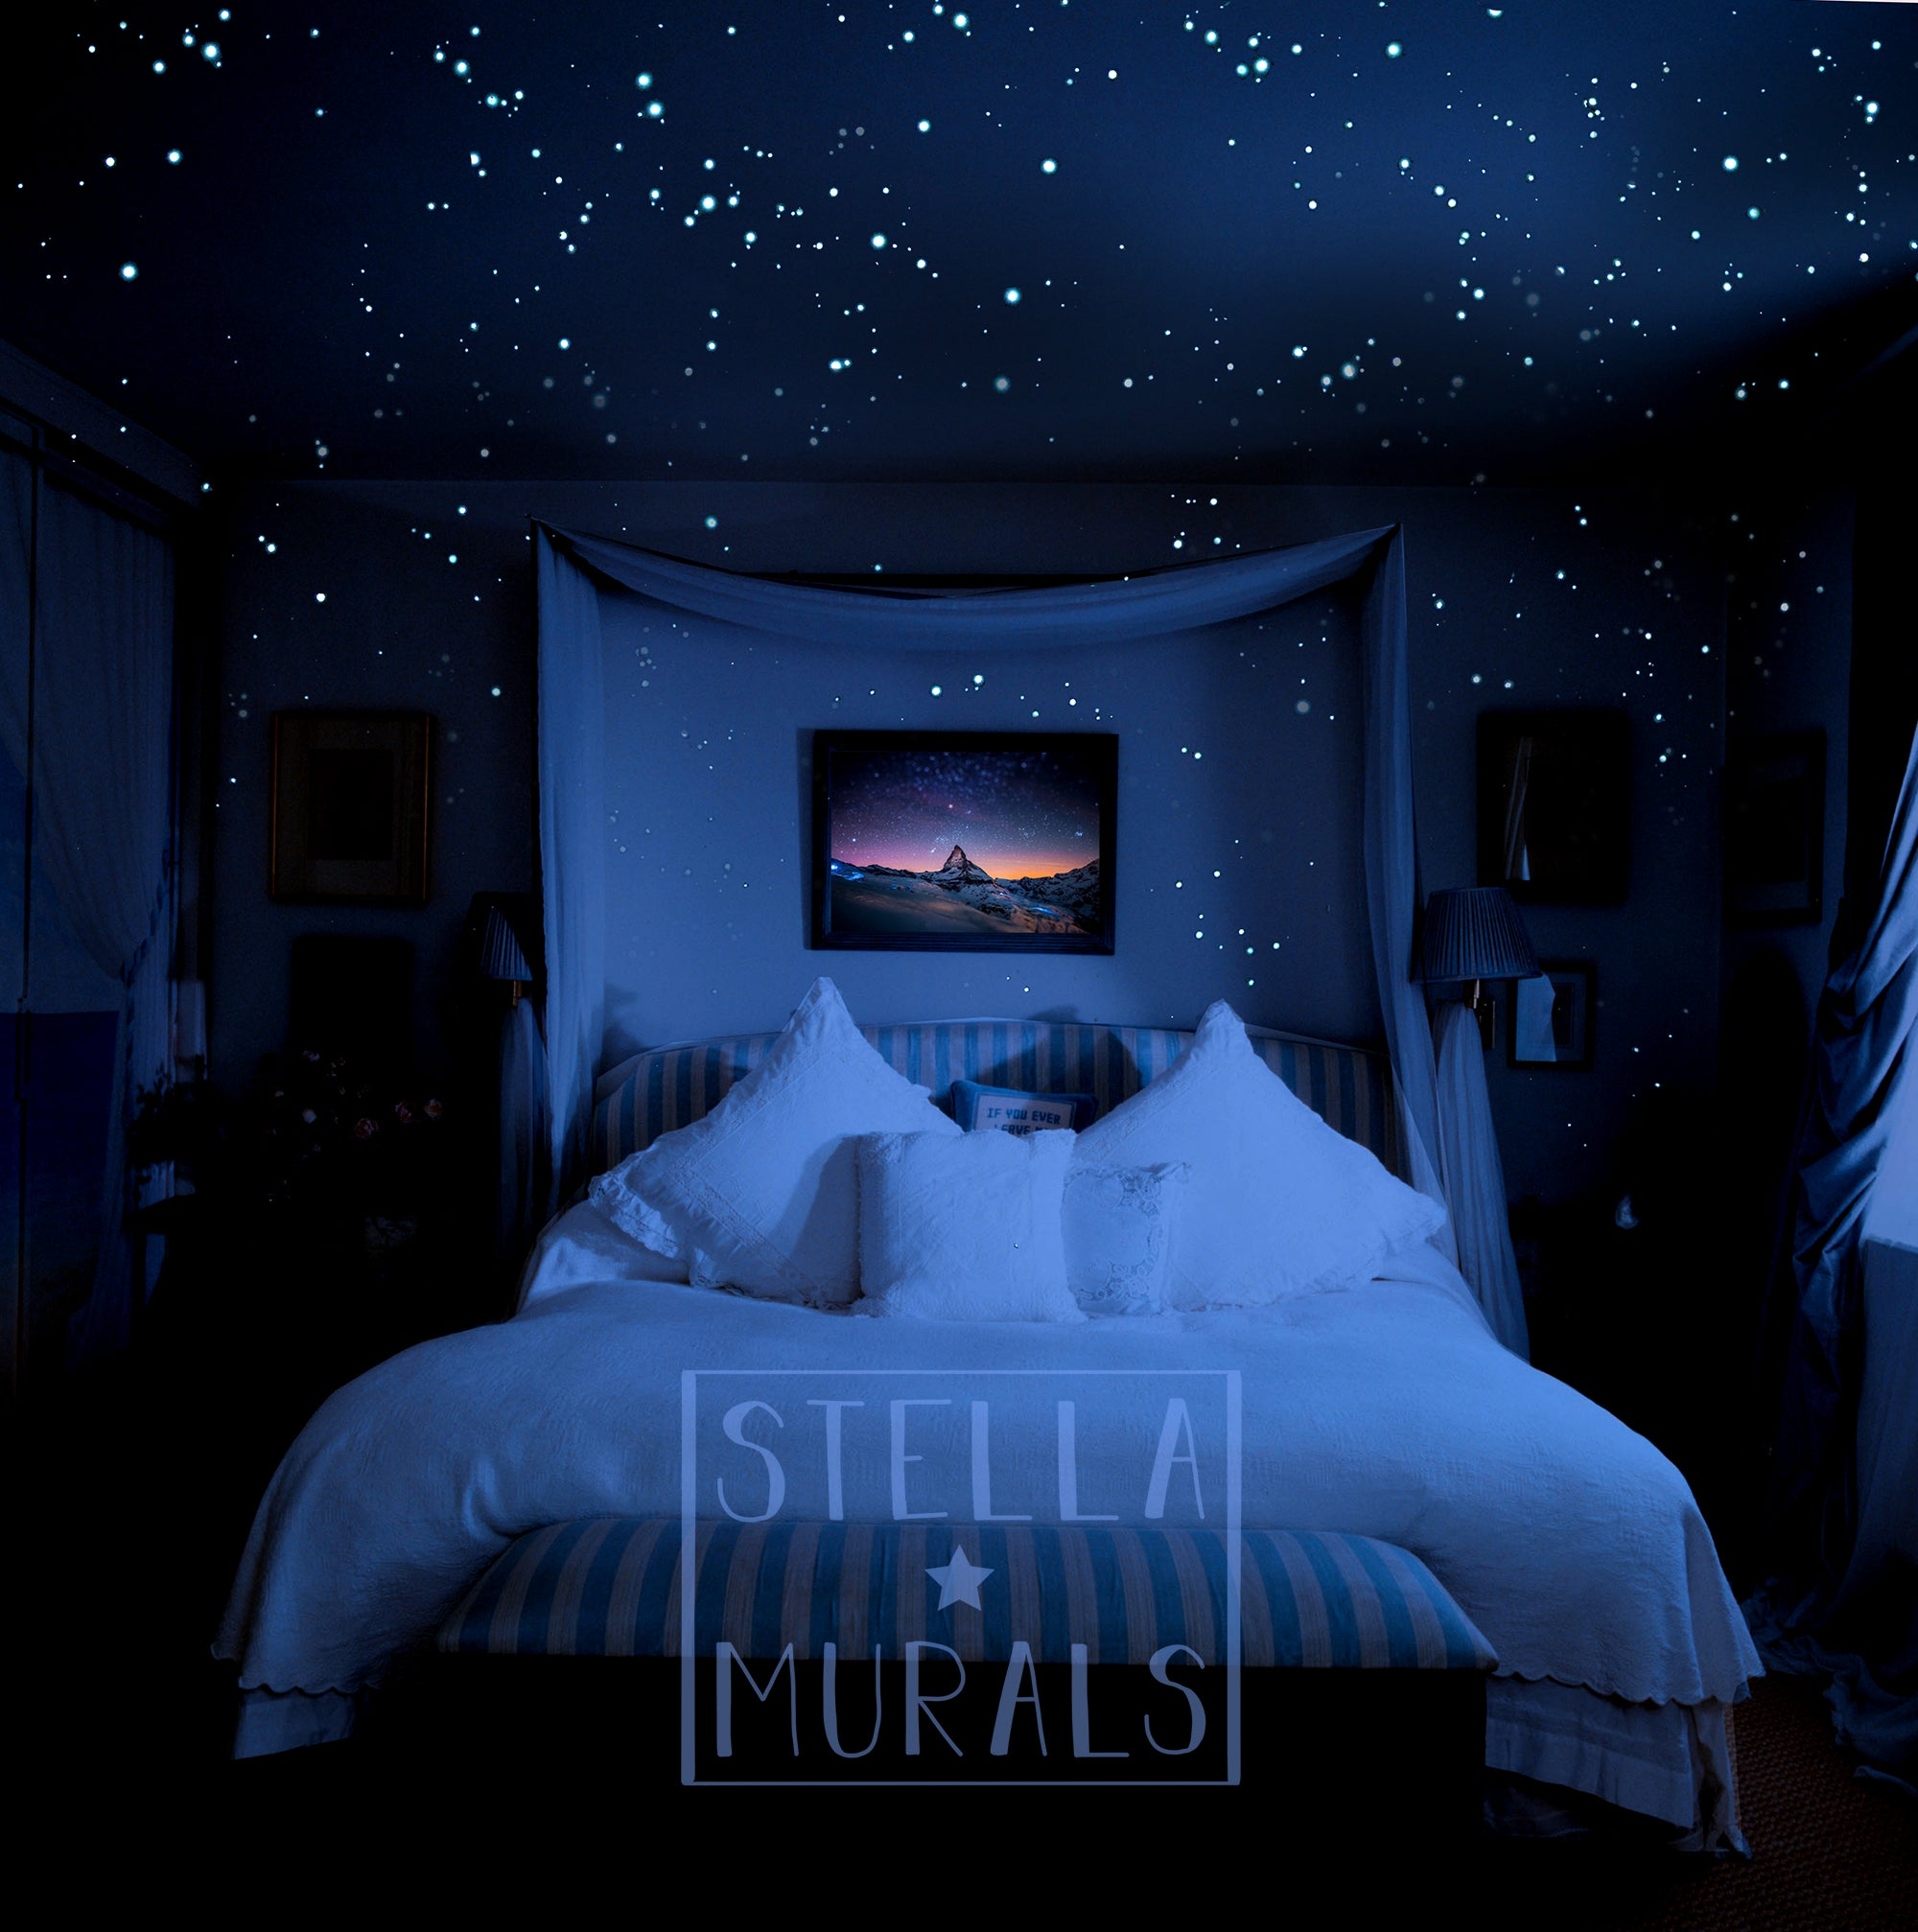 Glow In The Dark Star Stickers For A Realistic Night Sky Ceiling Stella Murals